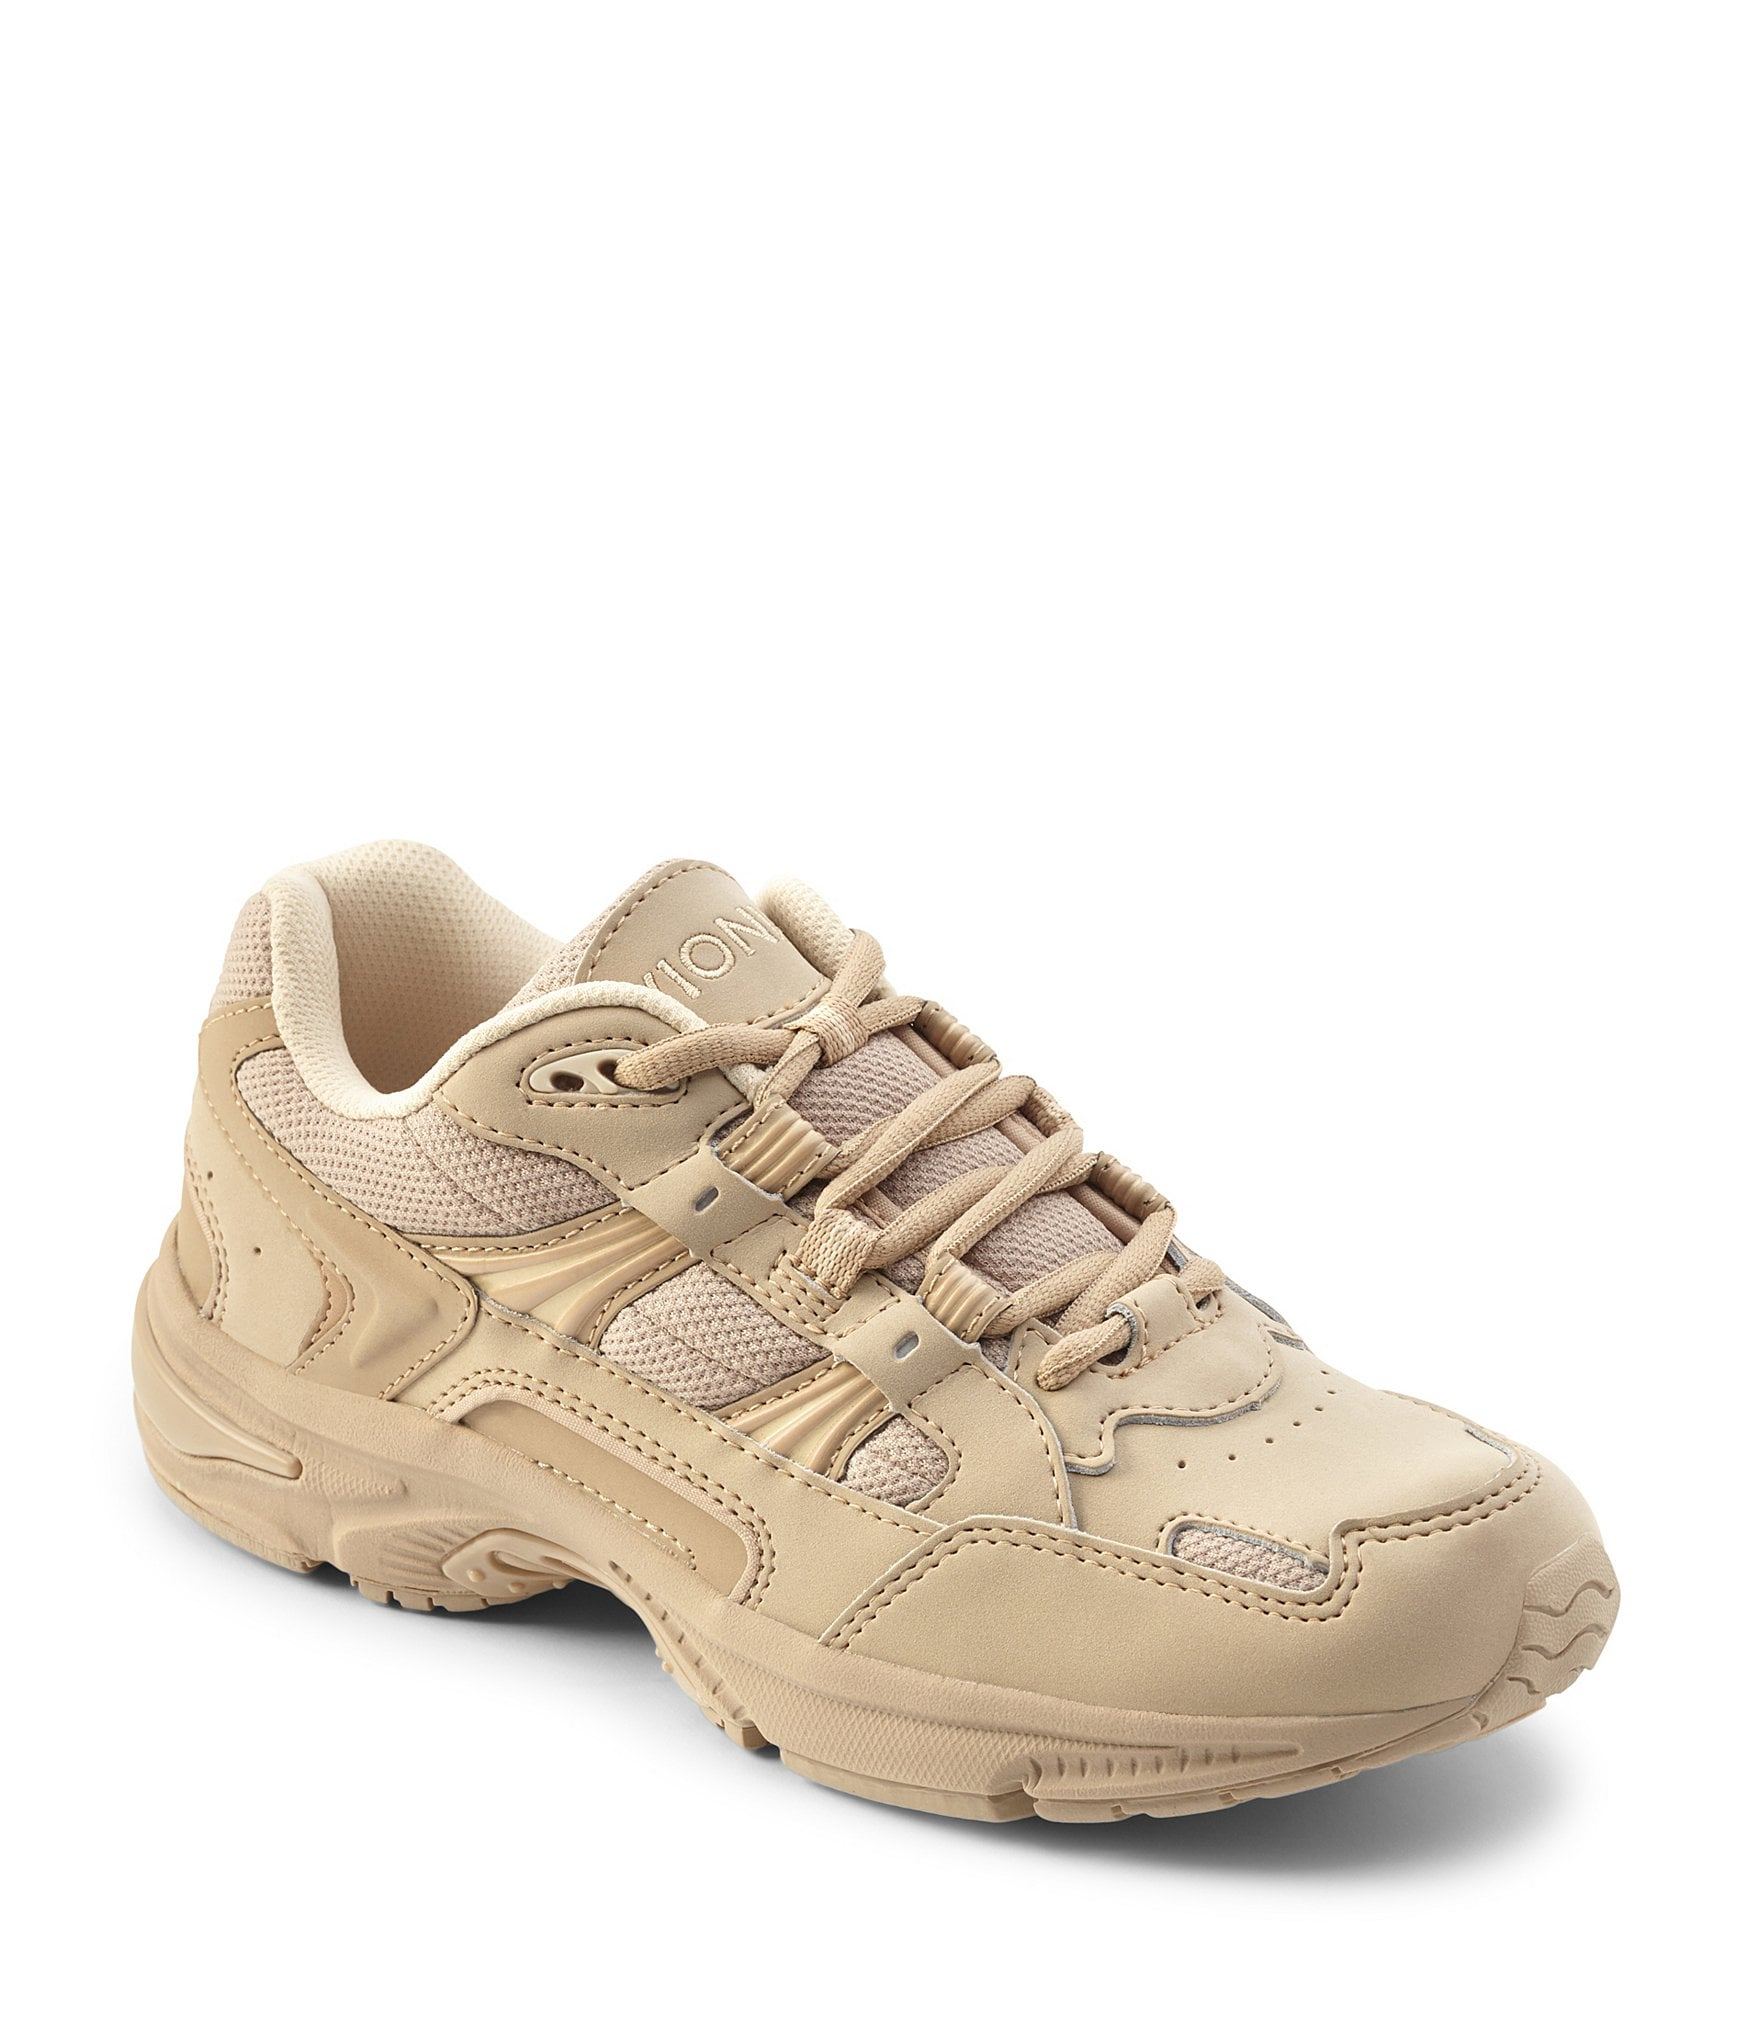 vionic 174 walker walking shoes dillards